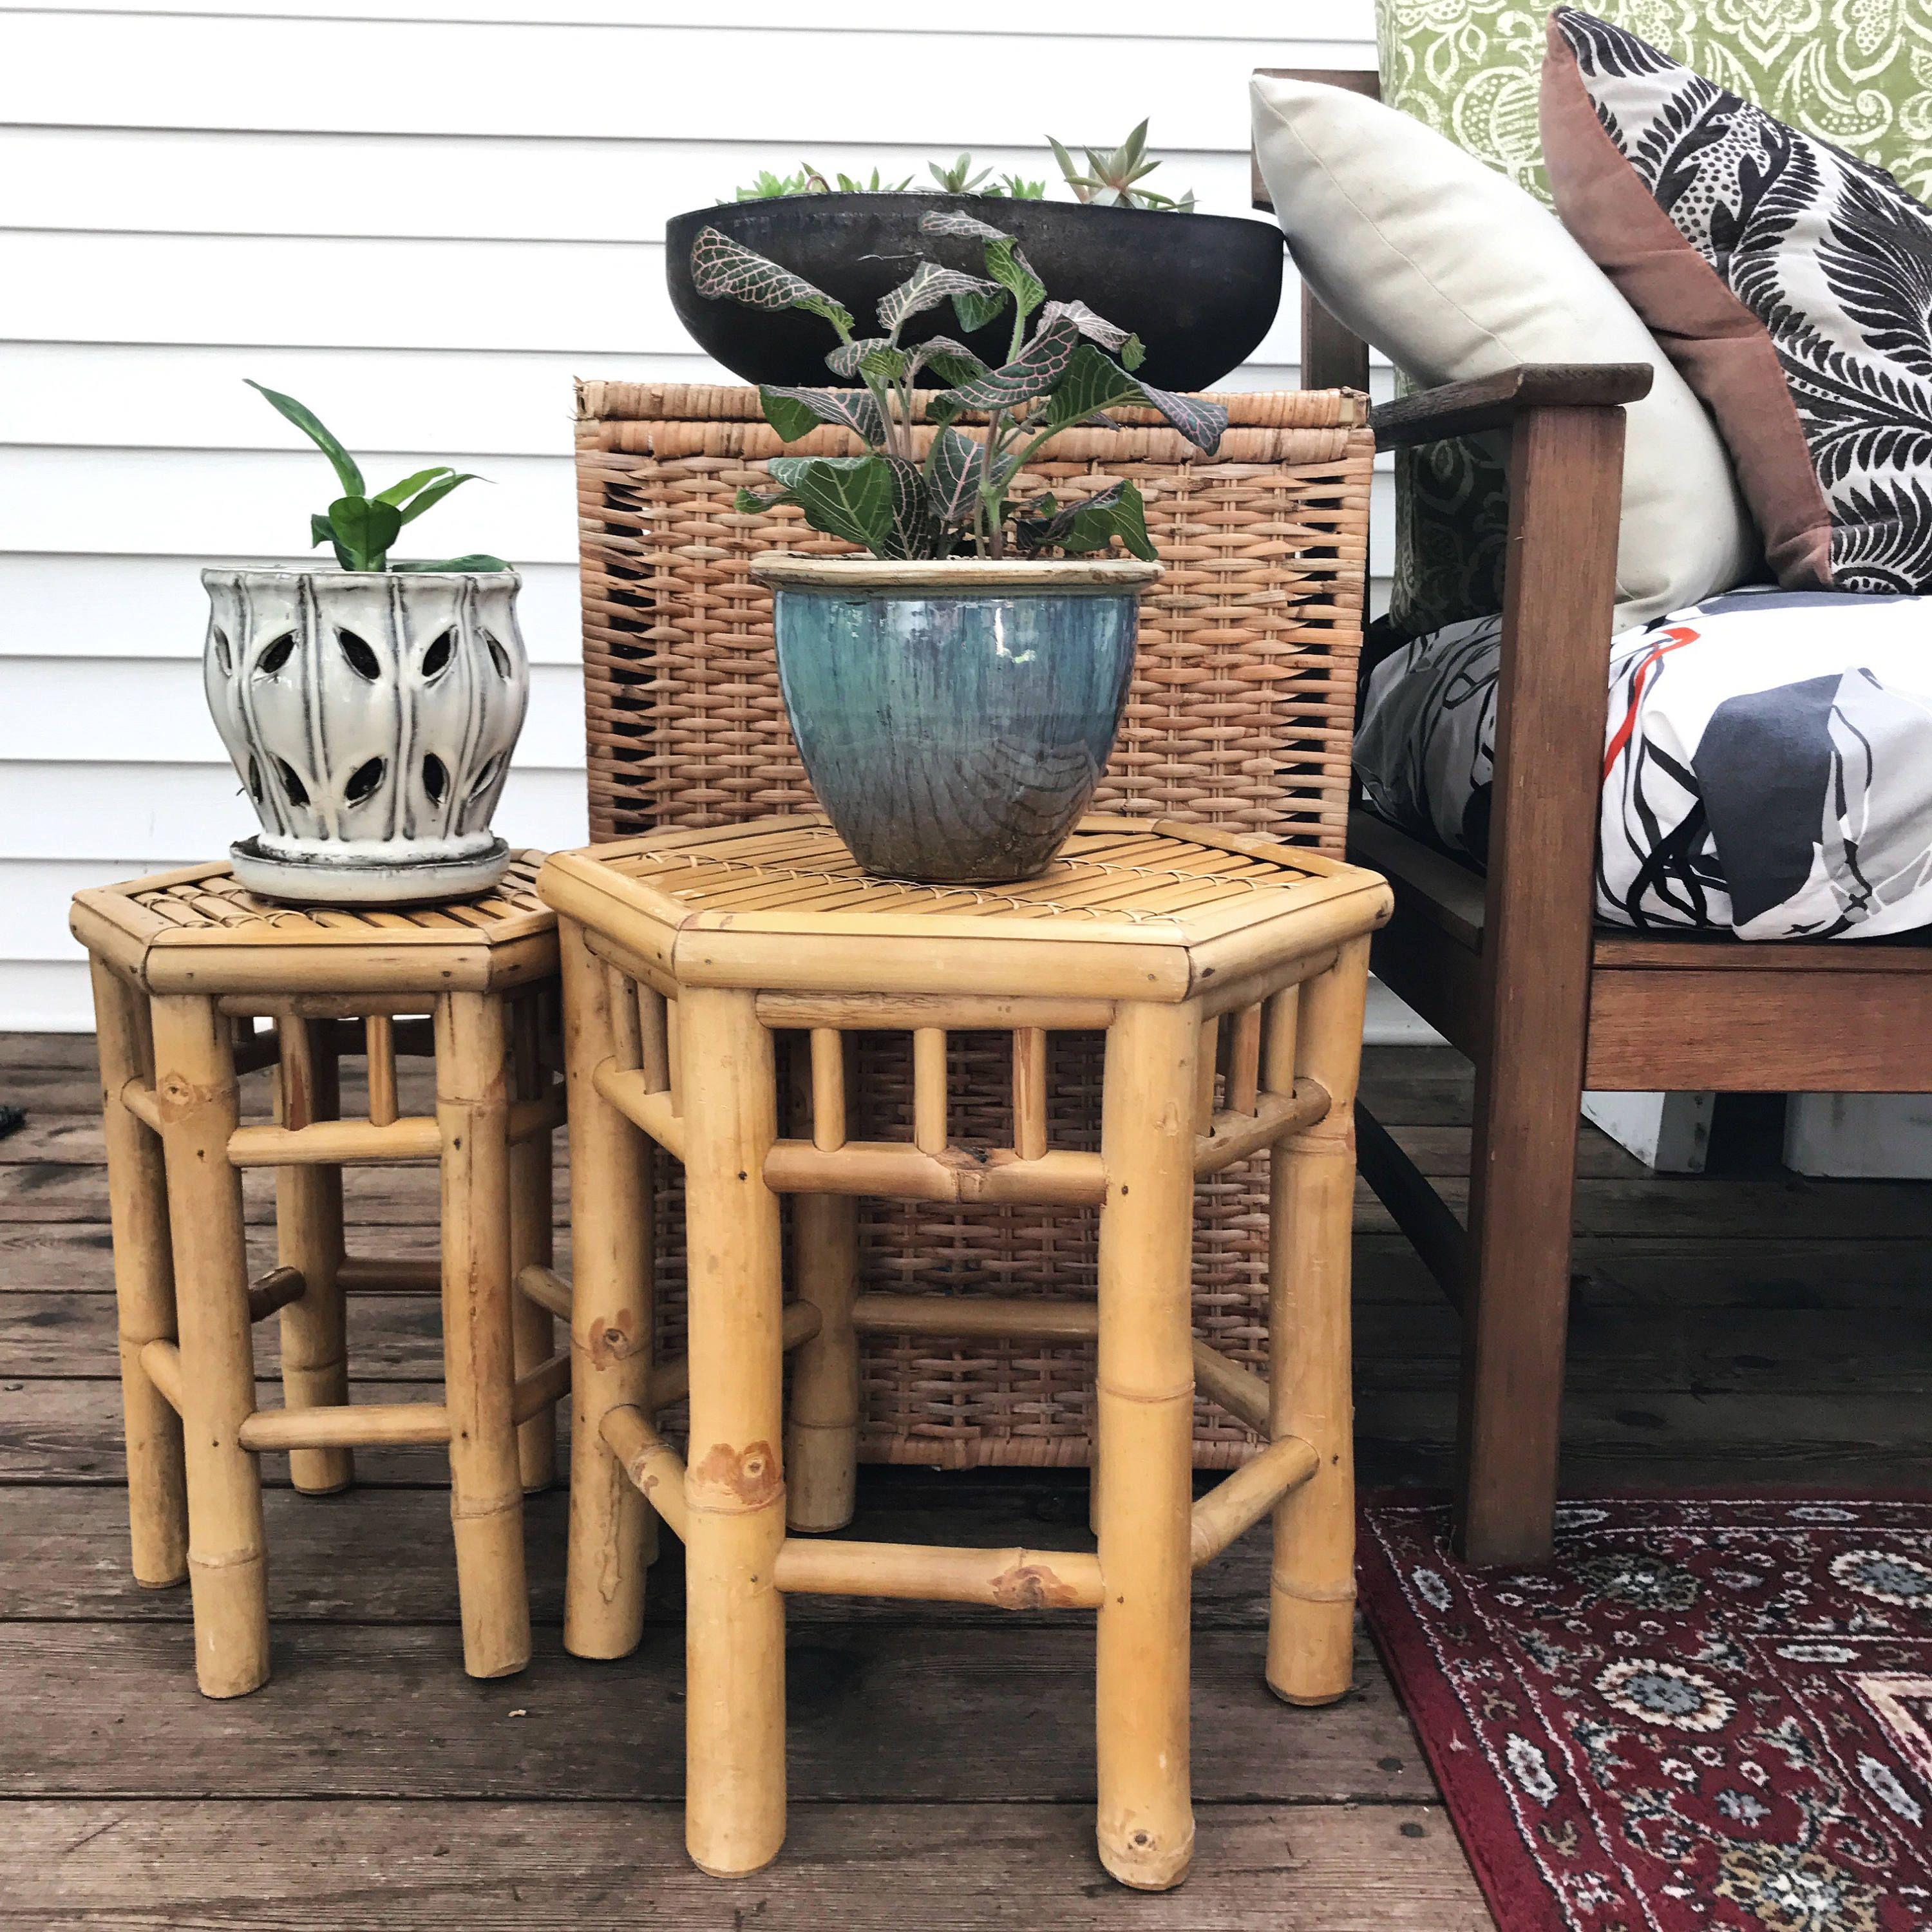 Astounding Vintage Bamboo Plant Stand Octagon Rattan Side End Table Home Interior And Landscaping Ologienasavecom